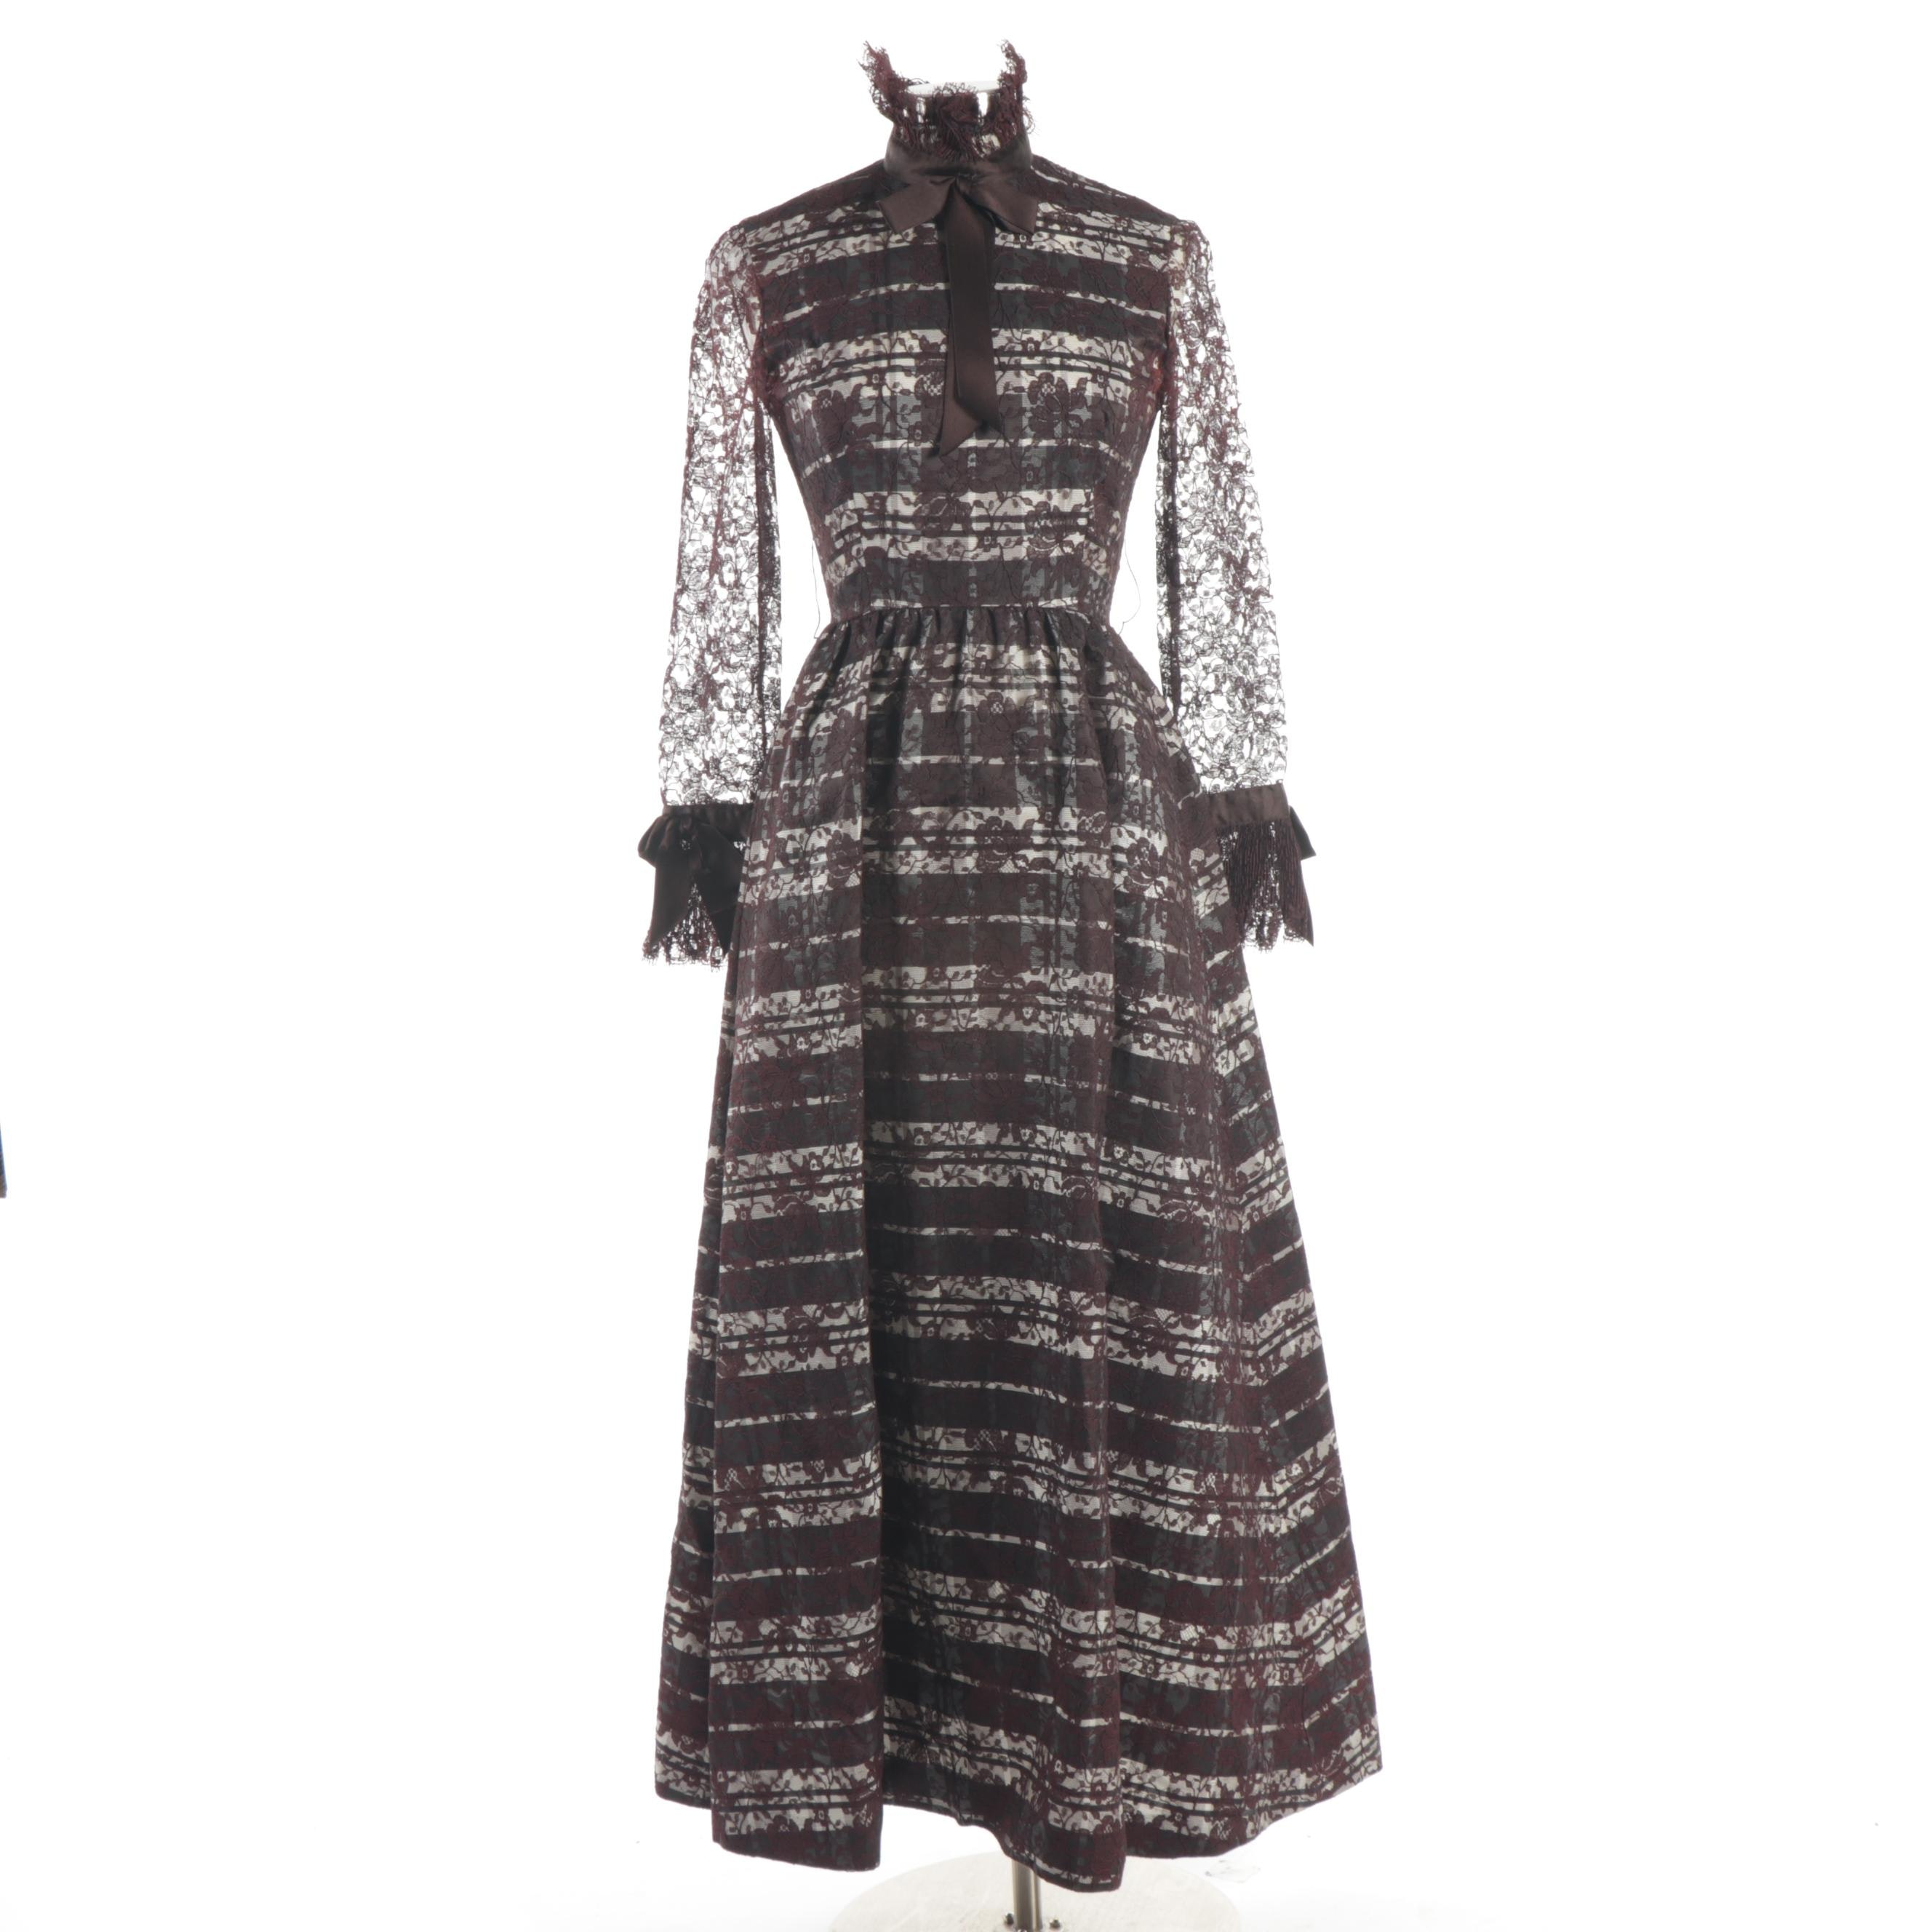 Geoffrey Beene Boutique Tartan and Lace Overlay High Neck Dress, 1970s Vintage